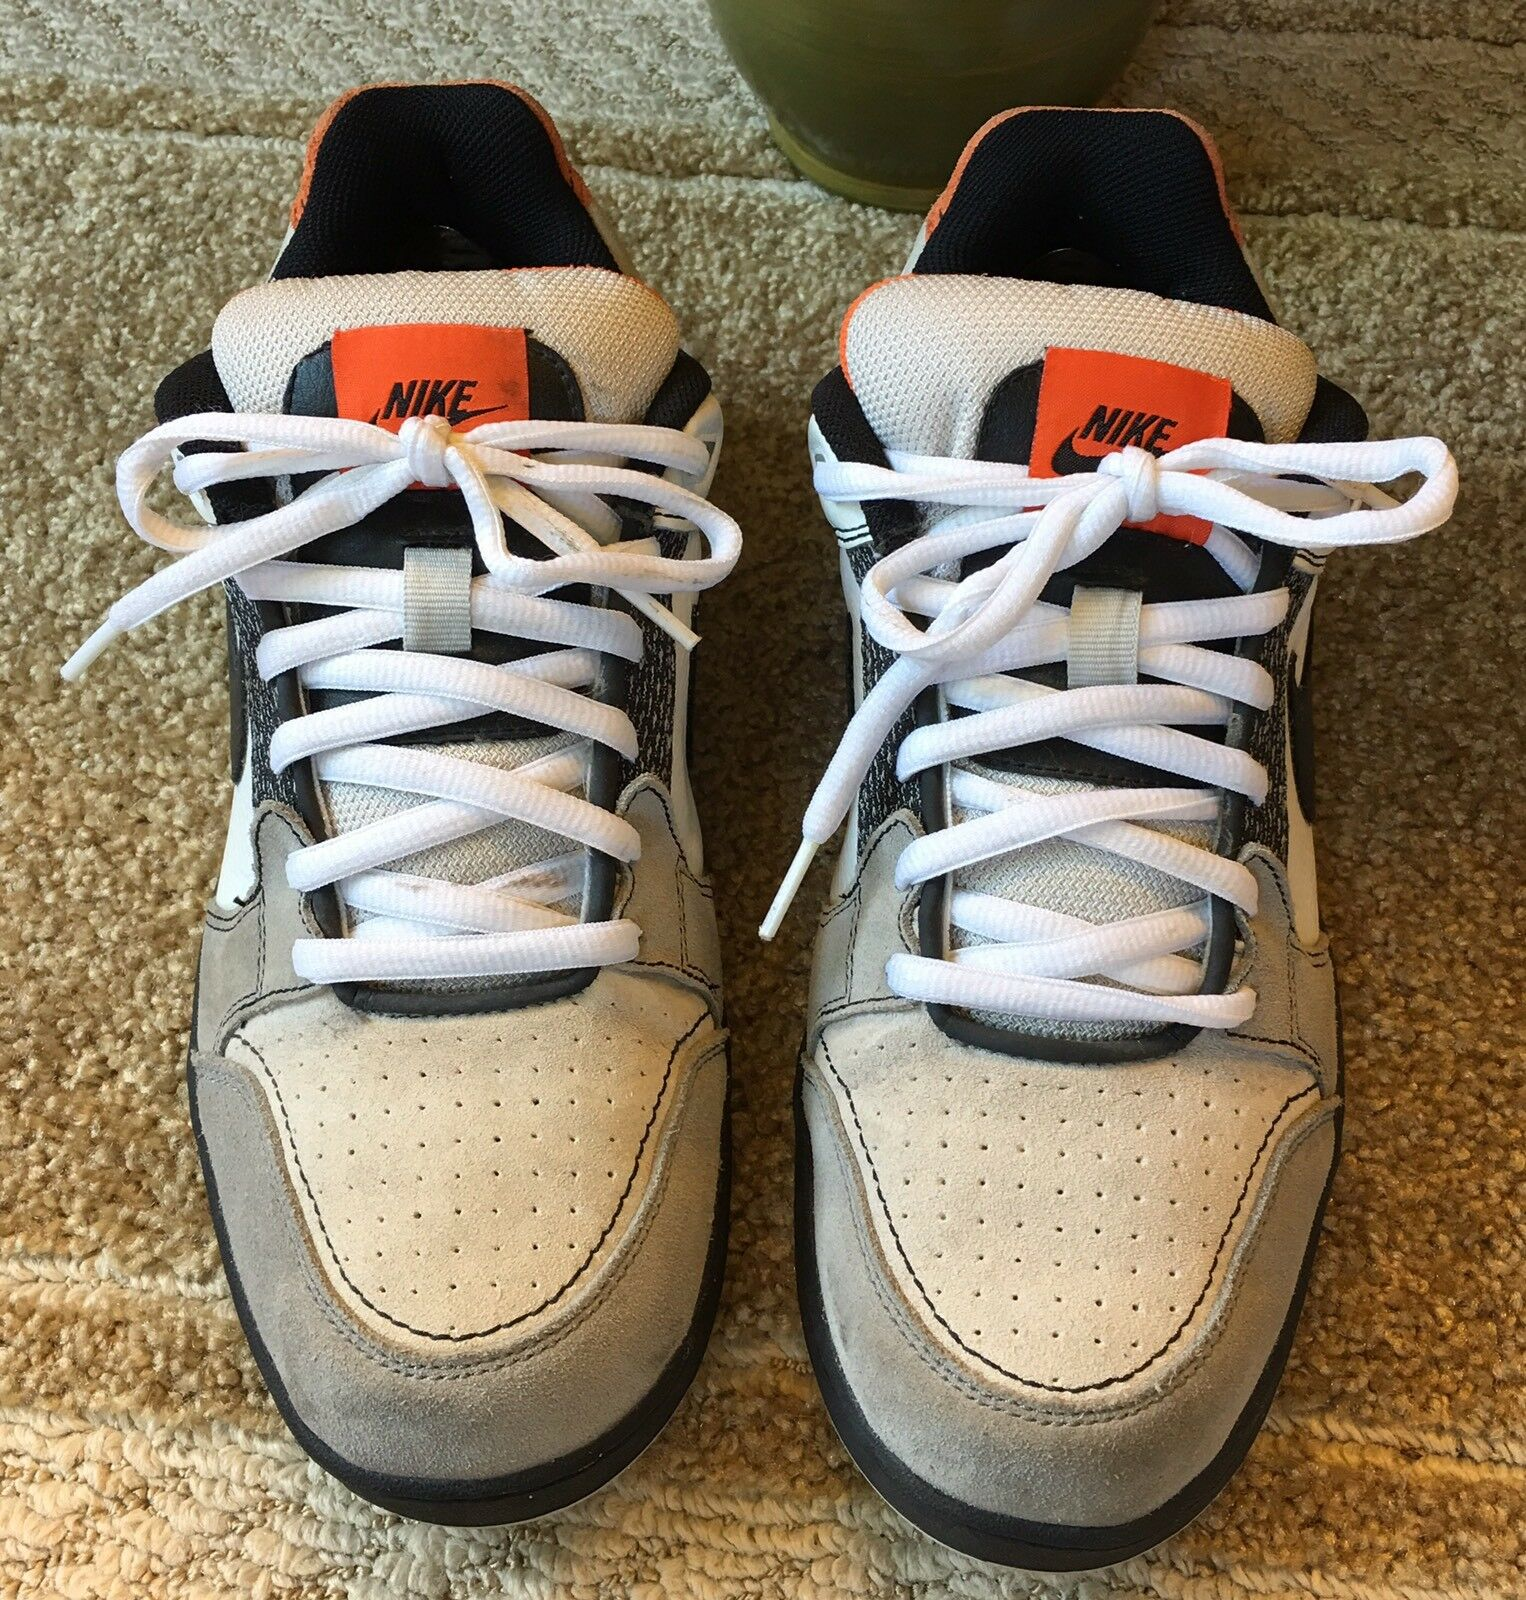 NIKE 2009 MEN'S LOW TOP SNEAKERS SHOES SIZE 10.5 LACE-UP WHITE BLACK & GRAY